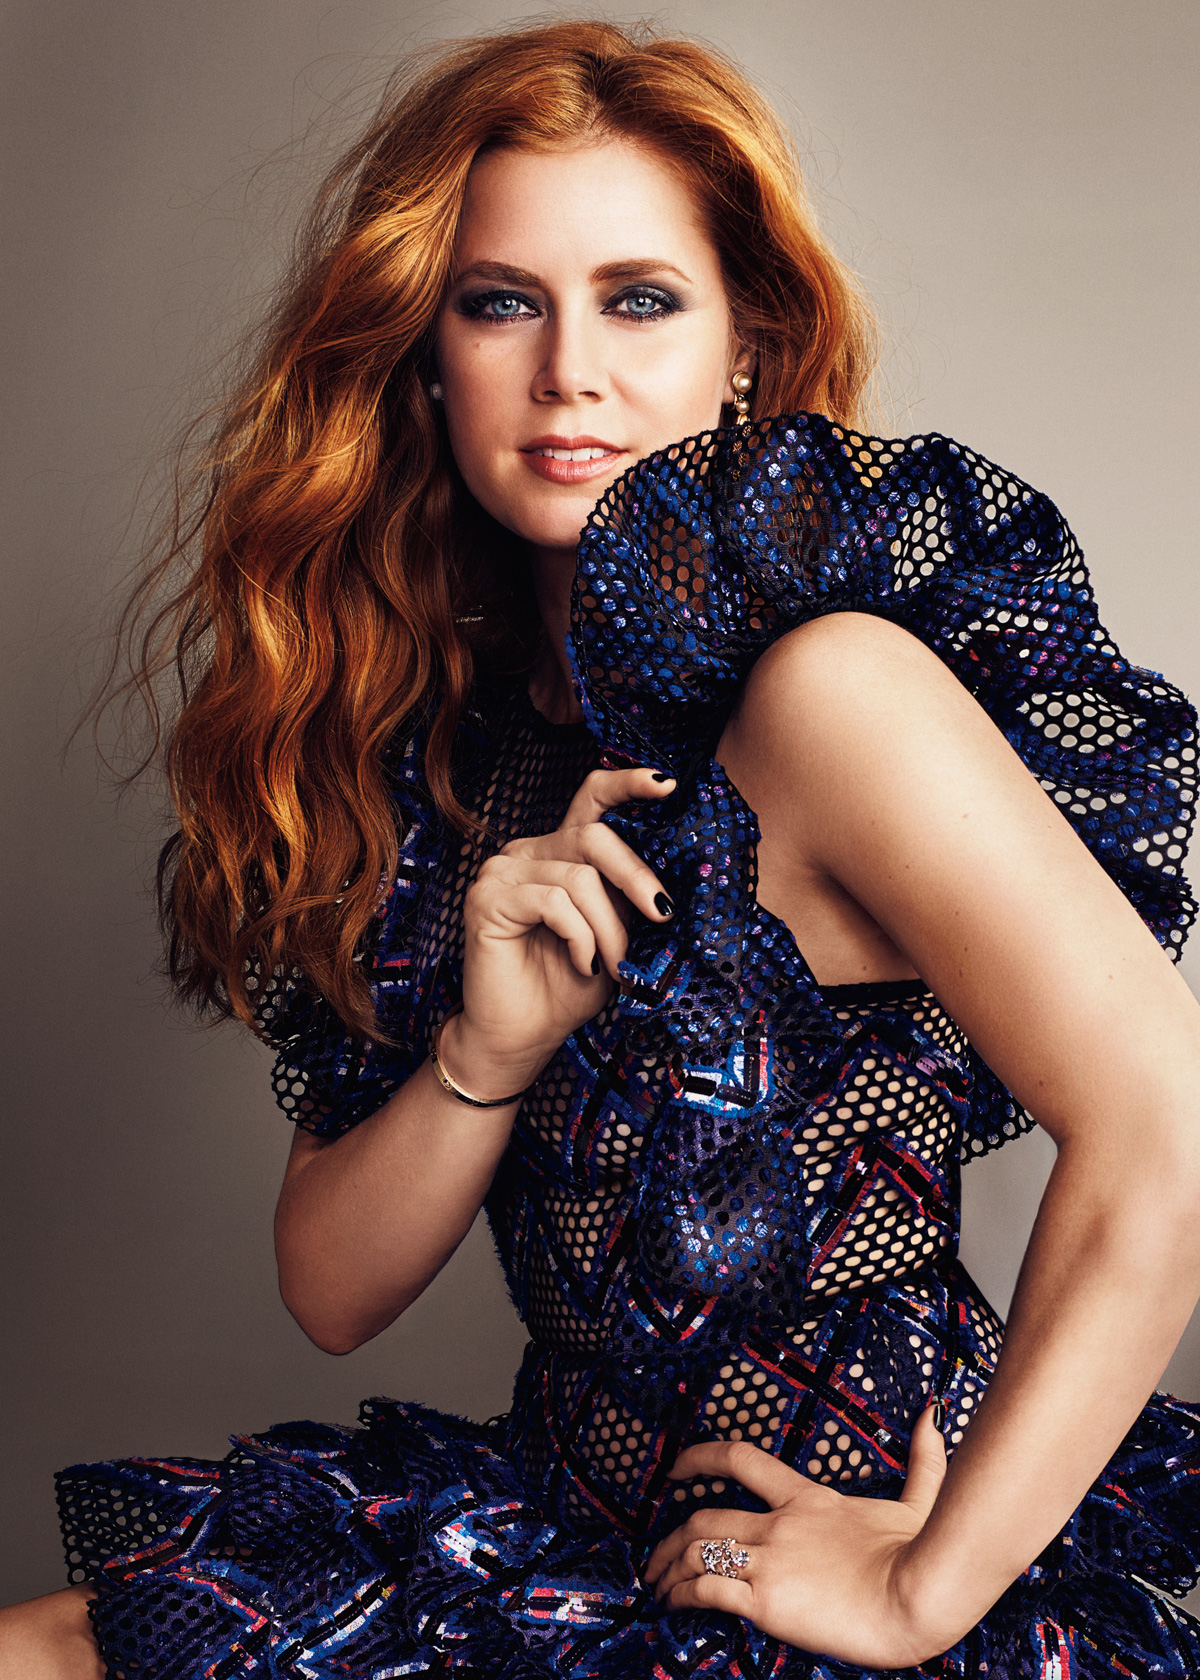 House Of Usher Amy Adams by Matthias Vriens McGrath 01